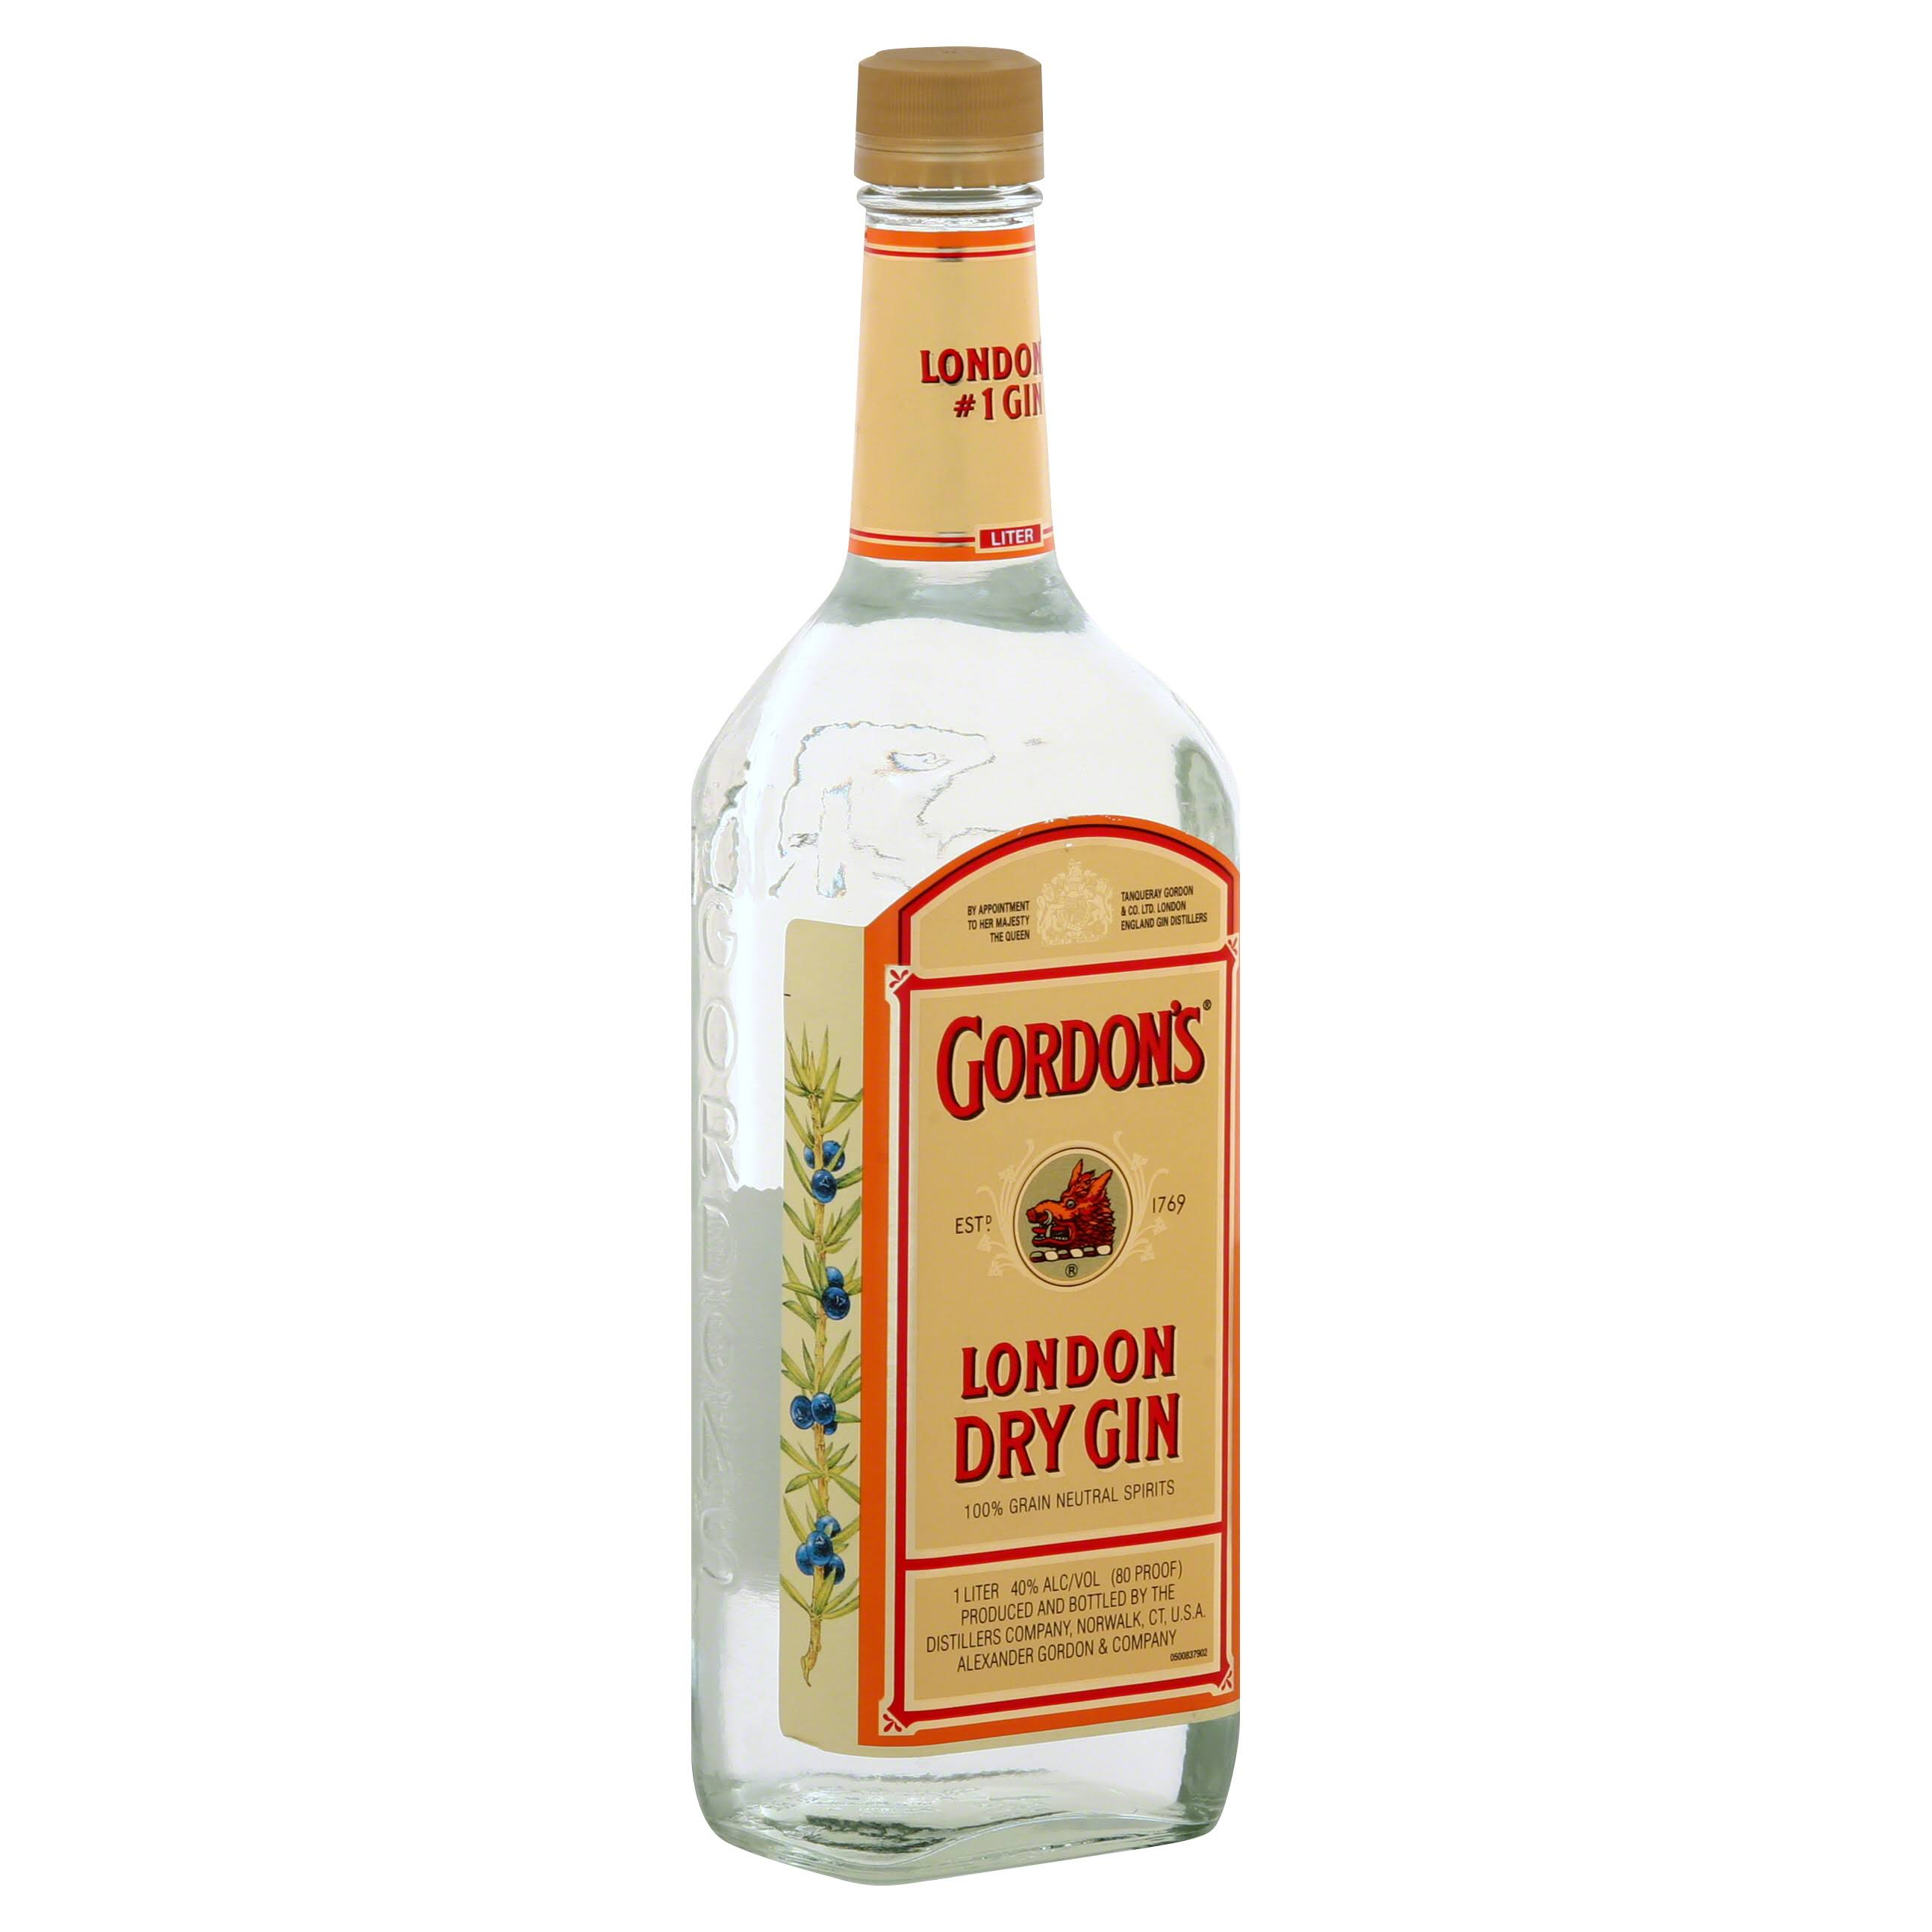 Gordon's London Dry Gin - 33.8oz